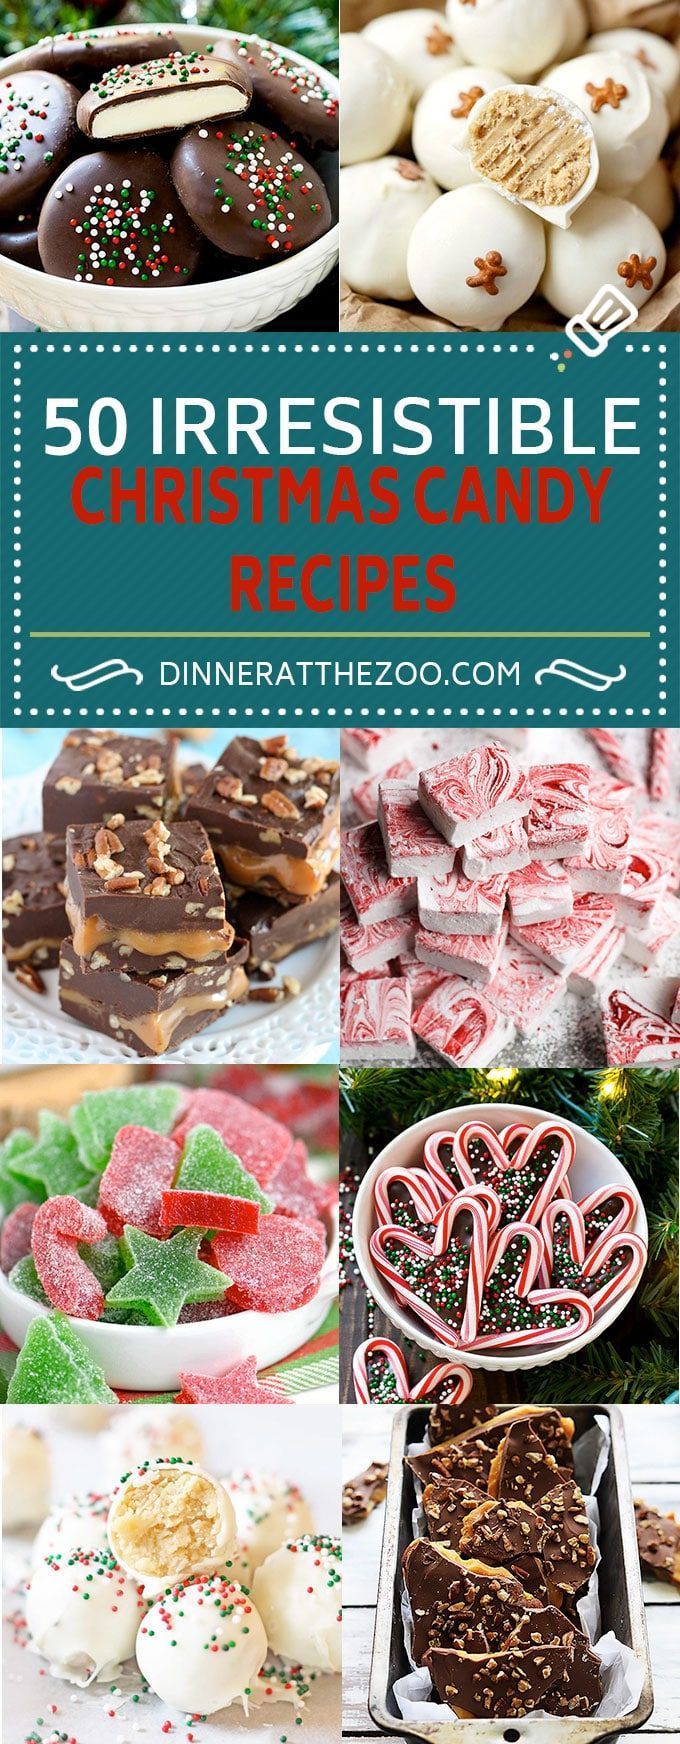 50 Irresistible Christmas Candy Recipes | Candy Recipes | Fudge Recipes | Truffle Recipes | Caramel Recipes